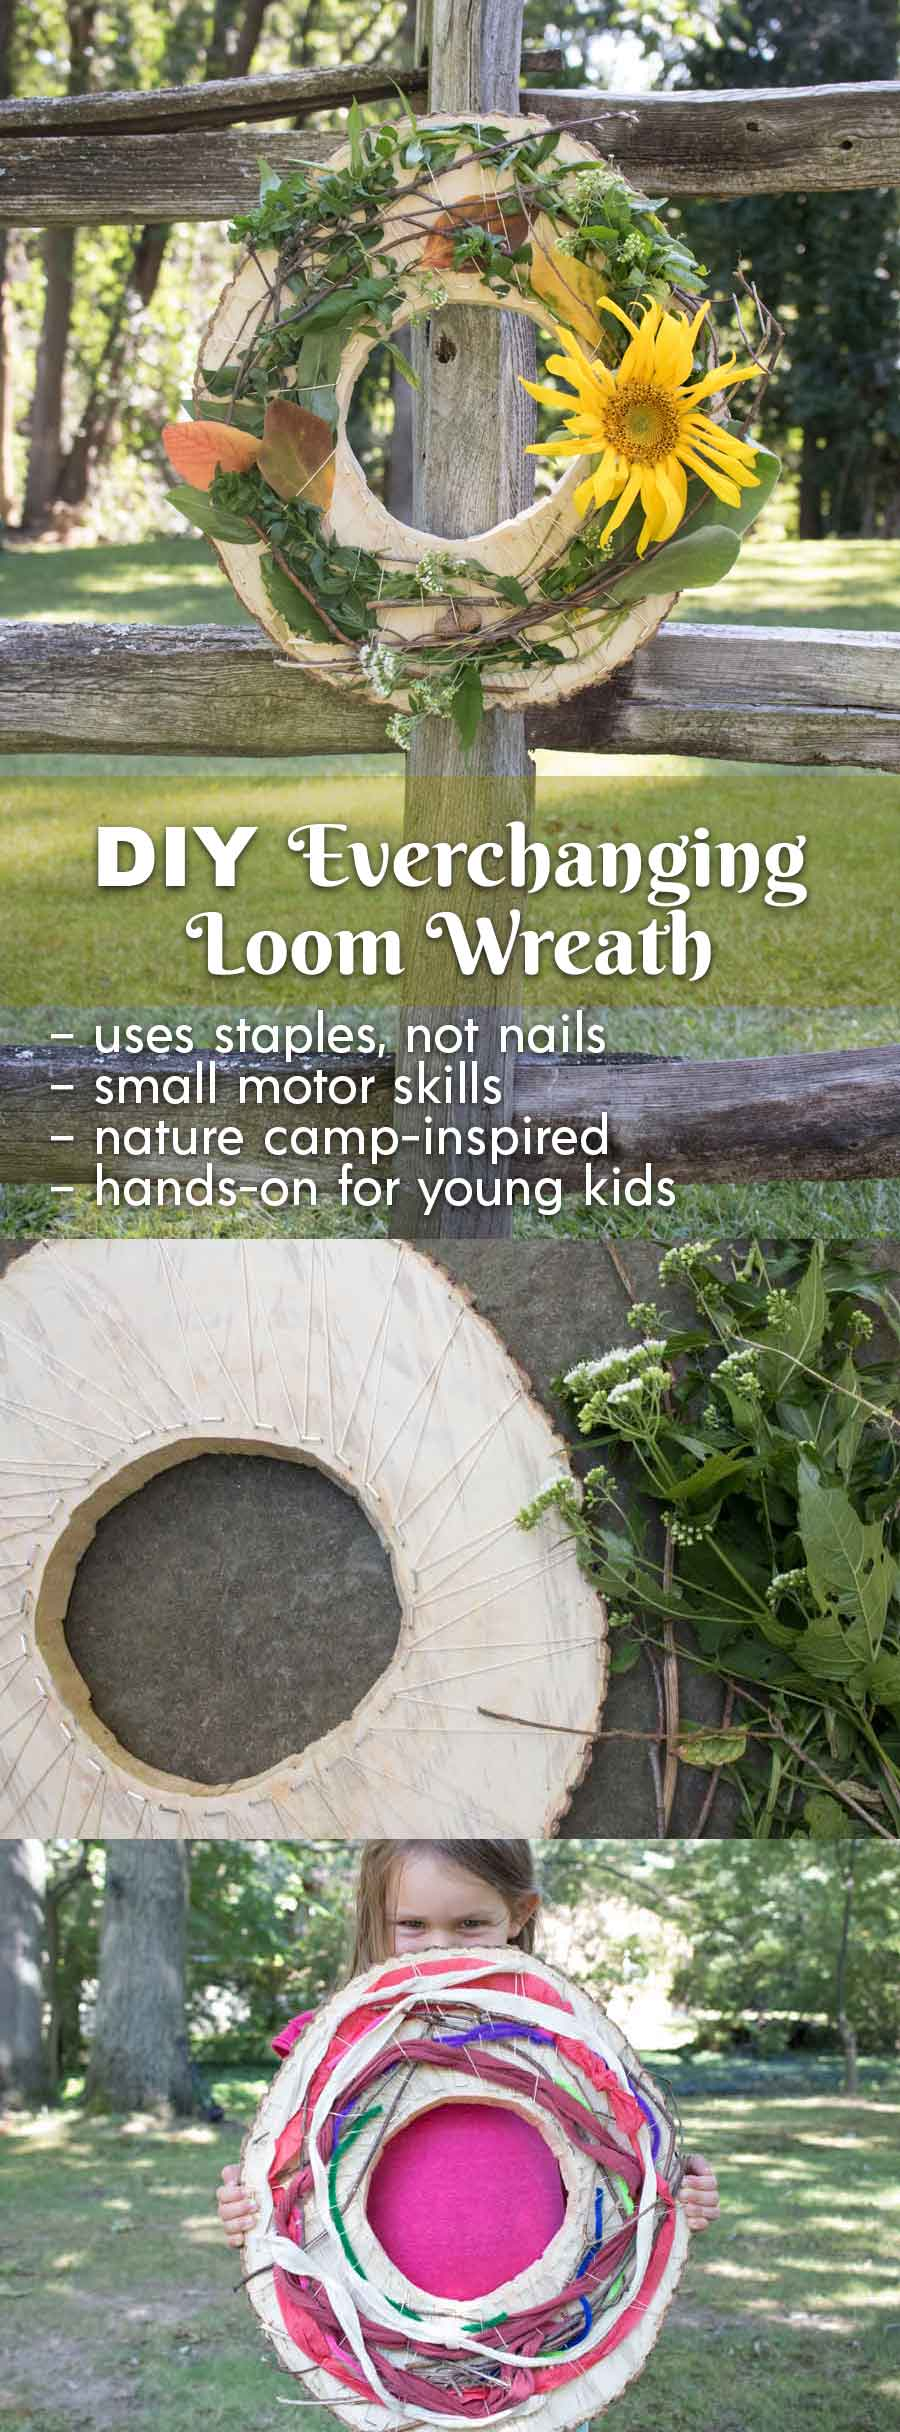 Make this loom wreath for your kids, and let them foster small motor skills while crafting in nature.